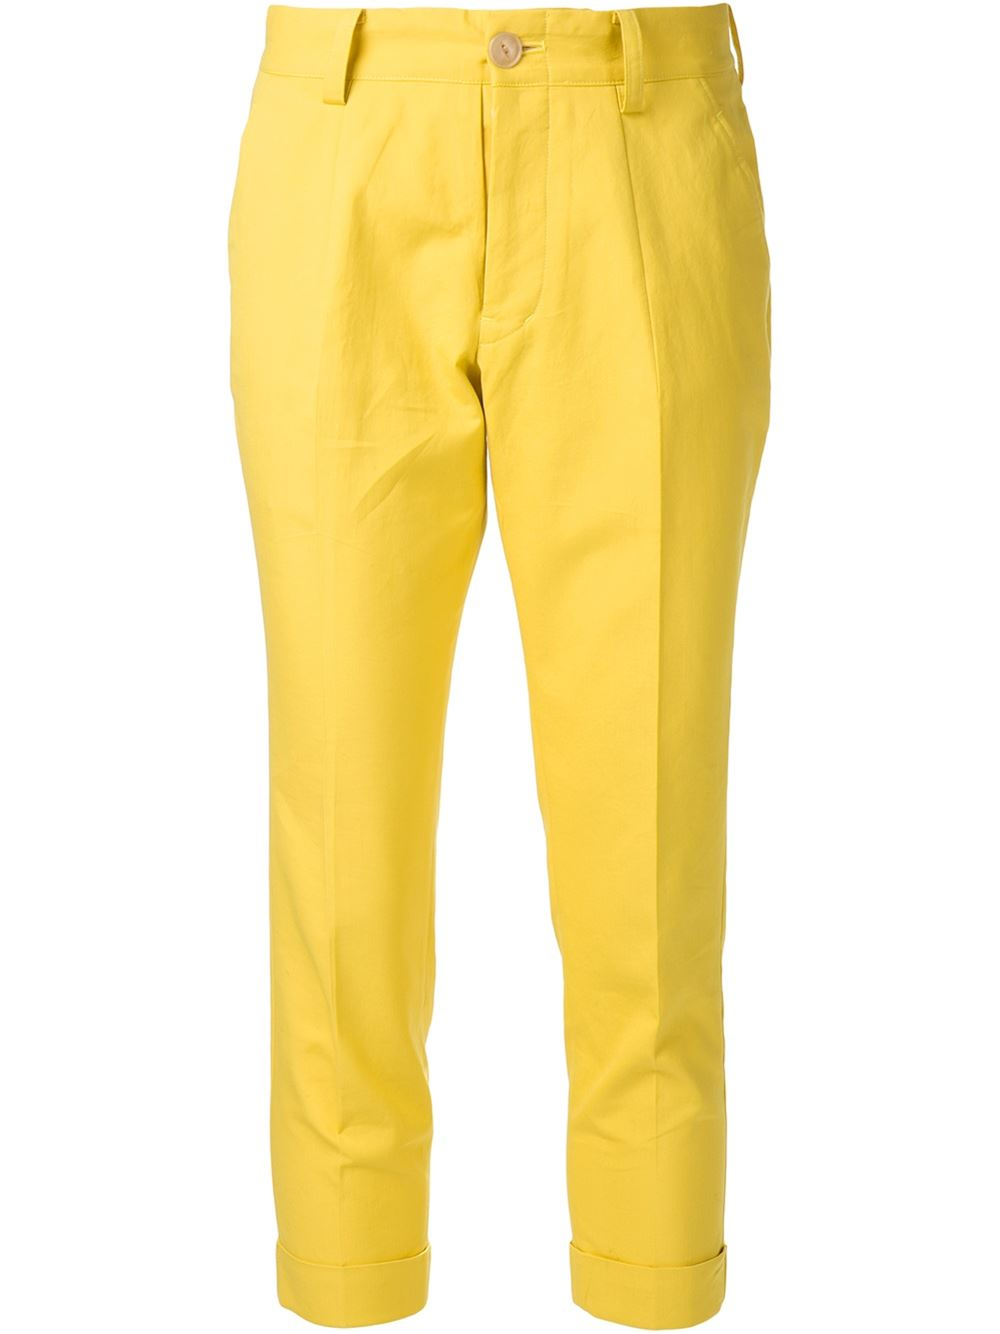 Arts & science Cropped Trousers in Yellow (yellow & orange ...